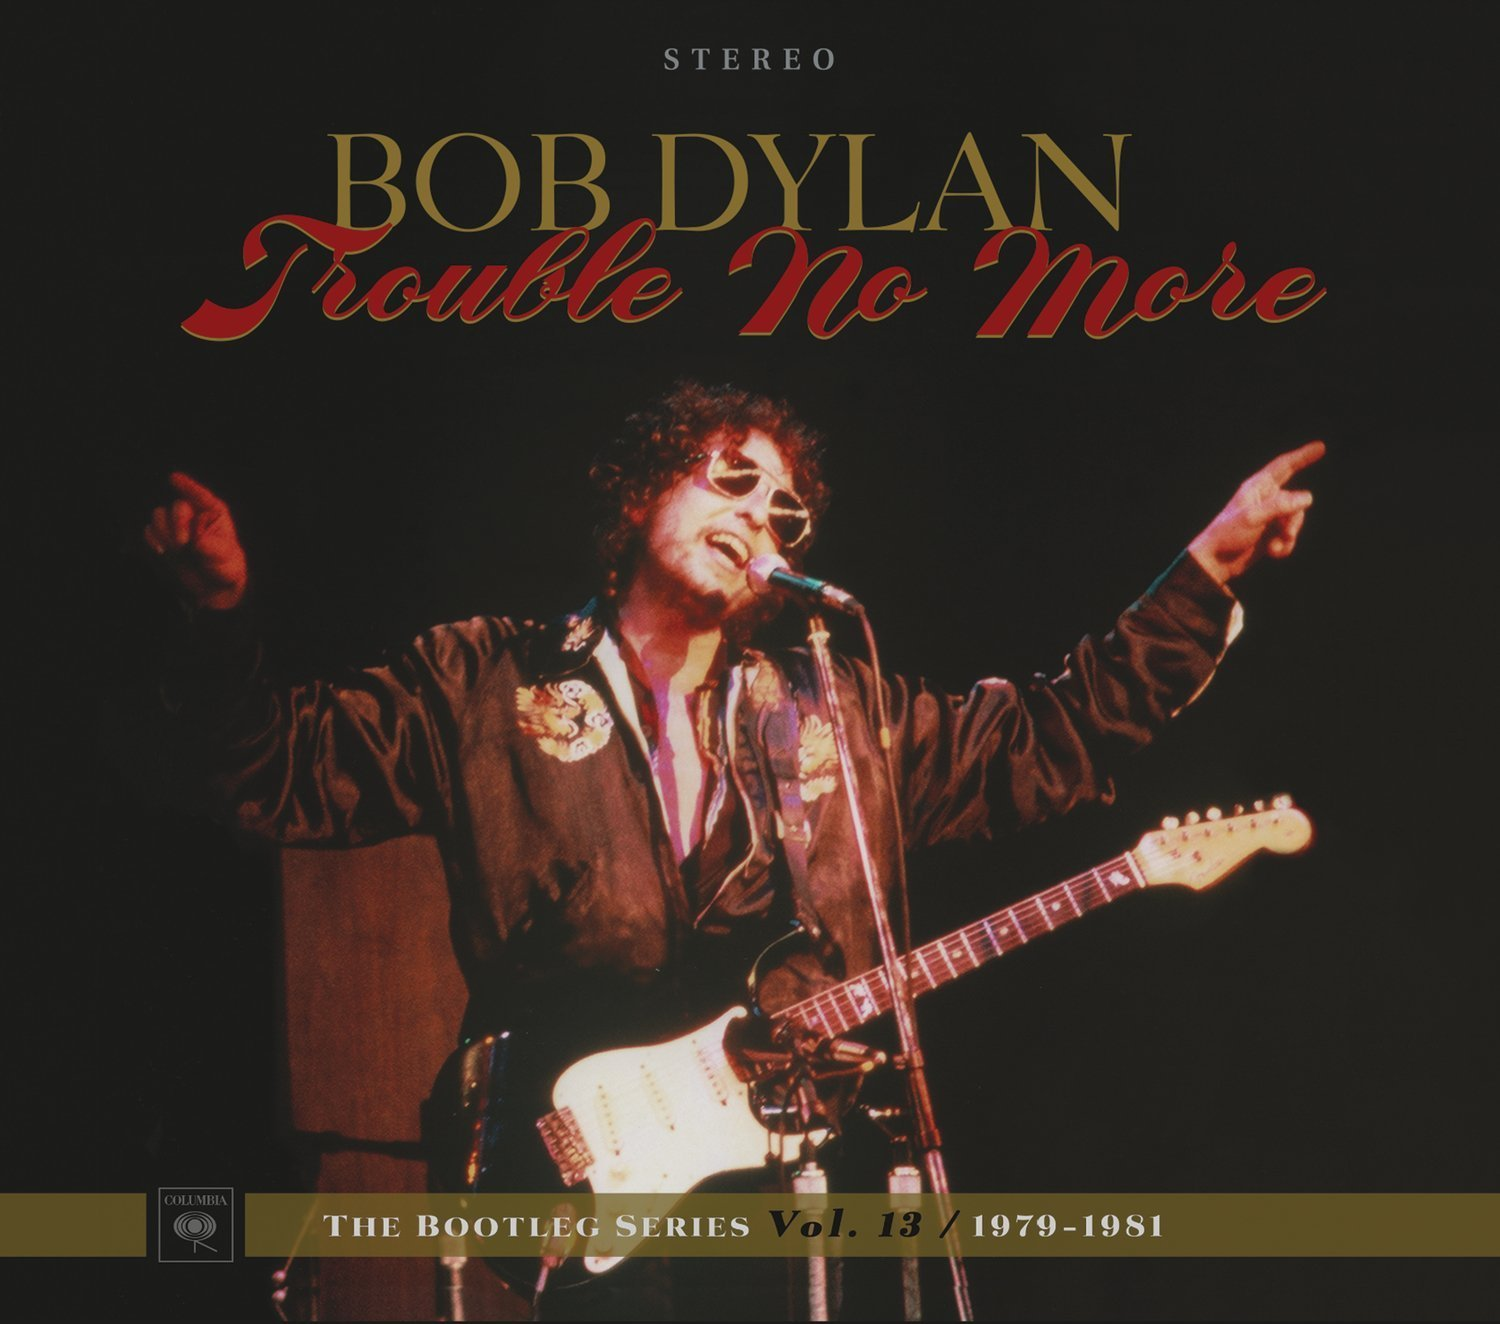 Trouble No More – The Bootleg Series Vol. 13 (1979-1981) by Bob Dylan image